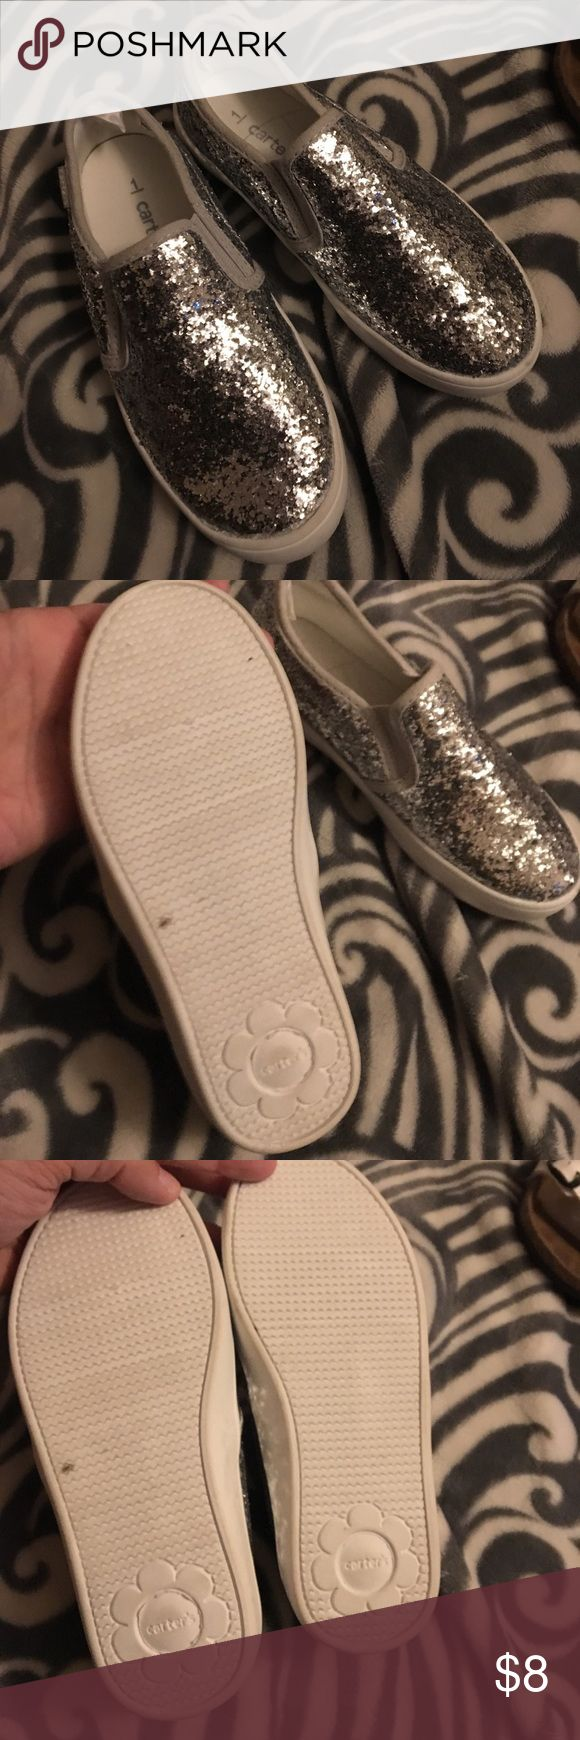 Carters slip on tennis shoes Silver glitter slip on tennis shoes! Never worn. Size 1 Carter's Shoes Sneakers